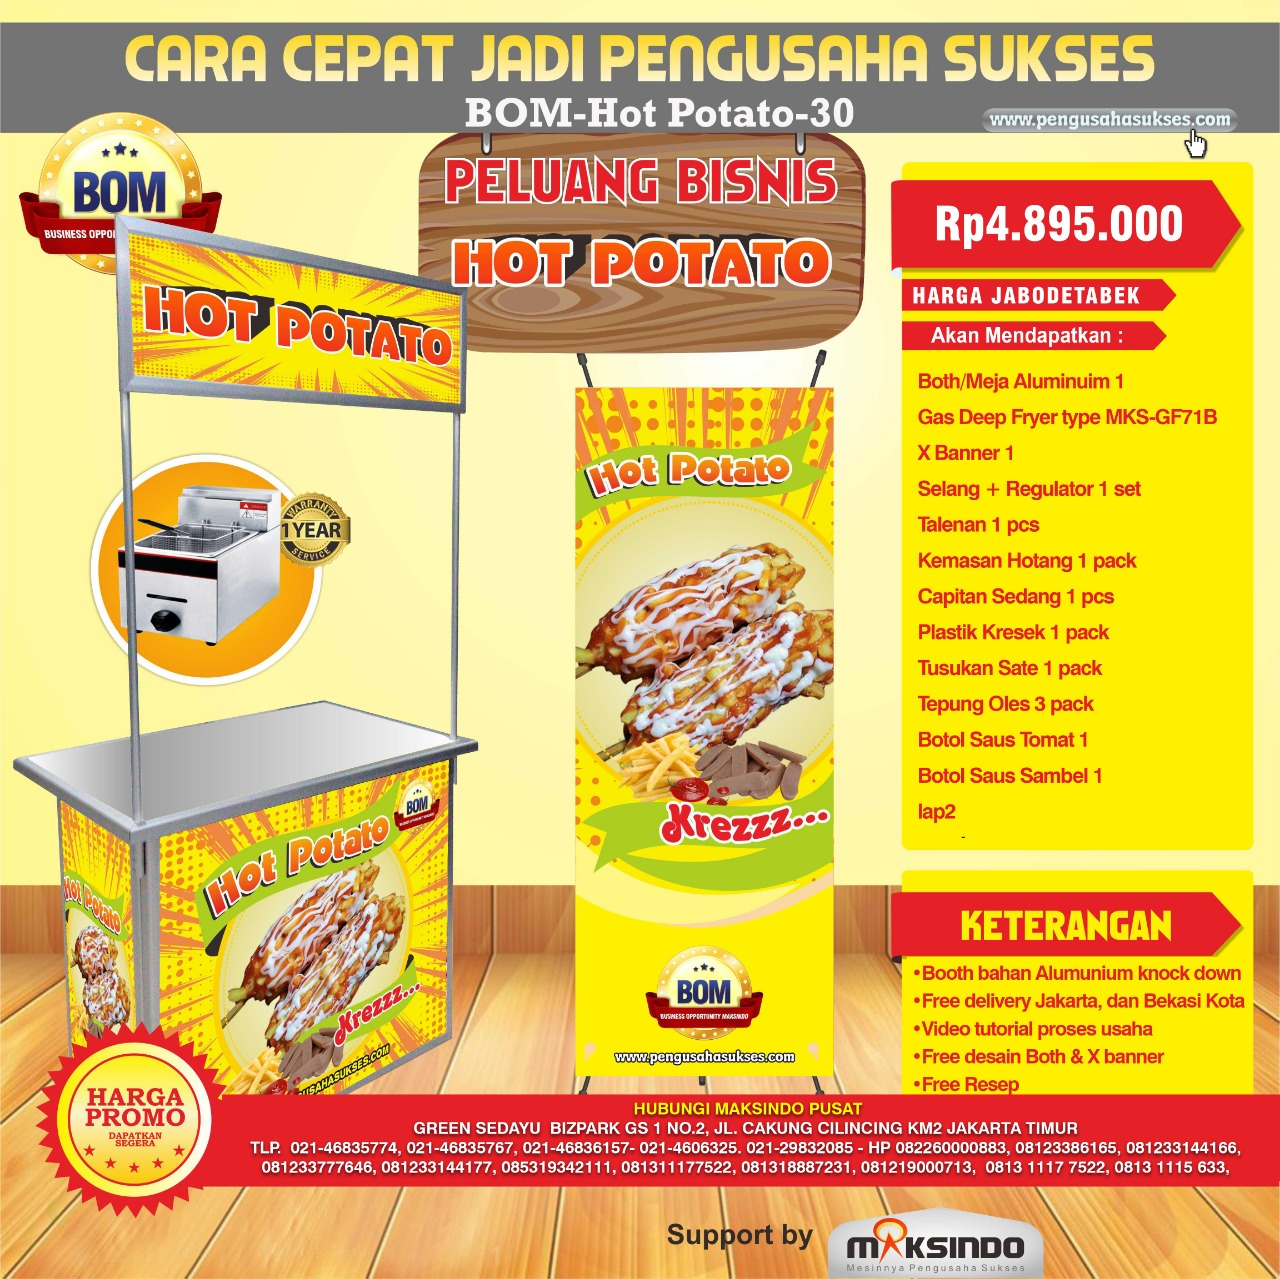 Paket Usaha Hot Potato Program BOM